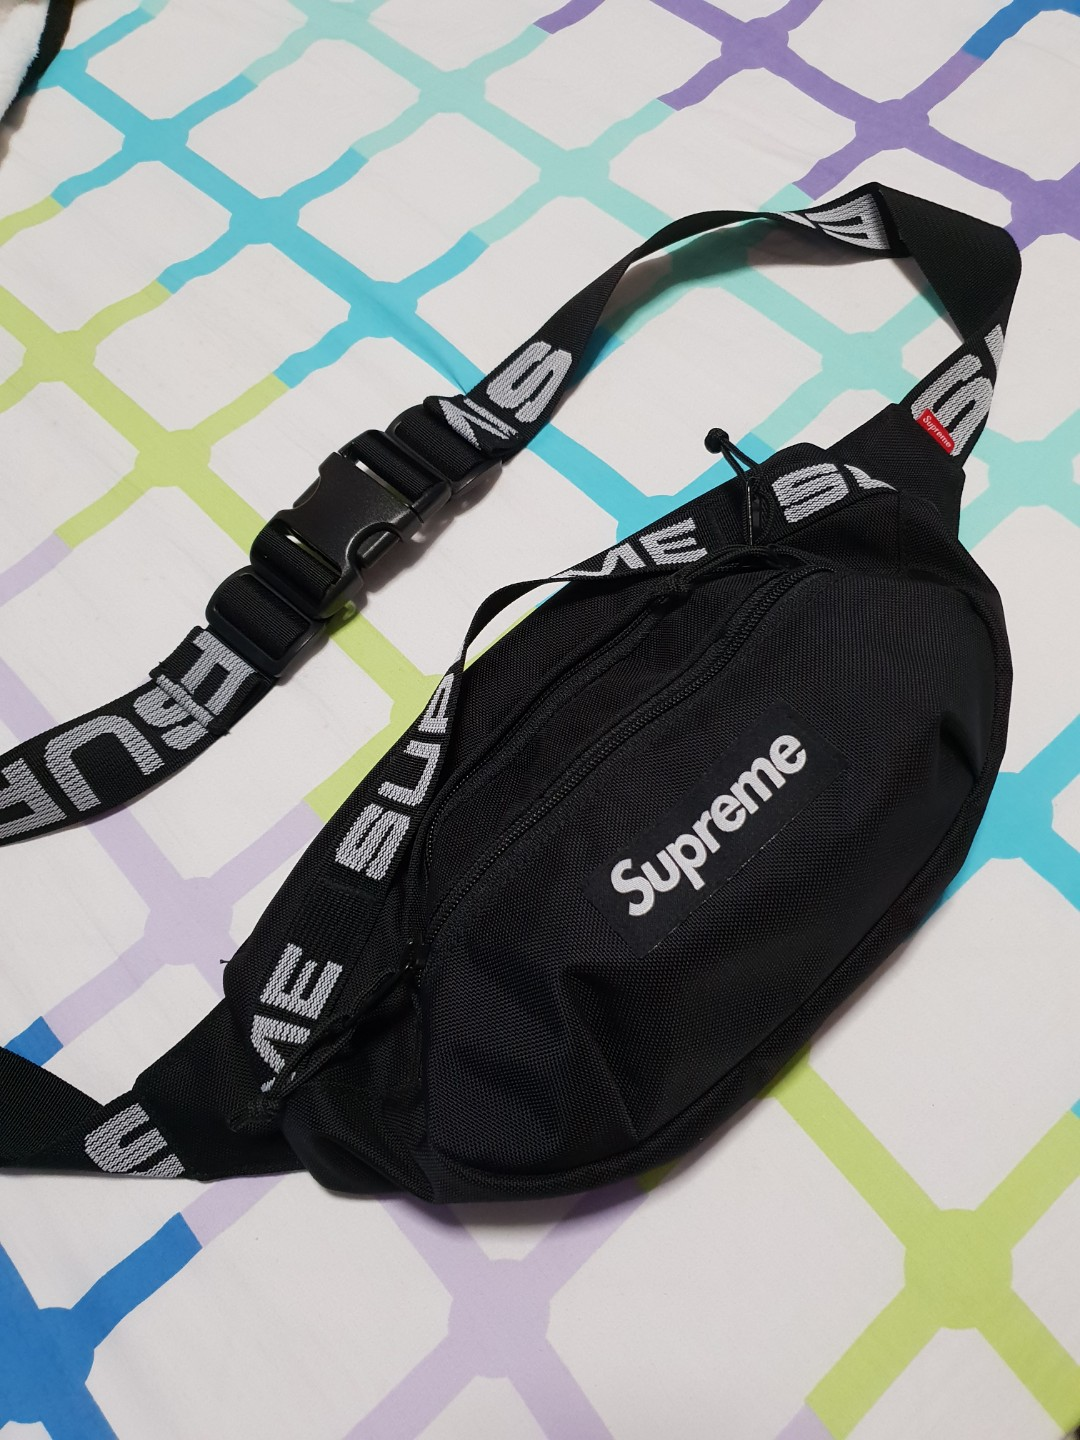 5f2a7c057b50 Supreme Waist Bag SS18 Black, Men's Fashion, Bags & Wallets, Sling Bags on  Carousell